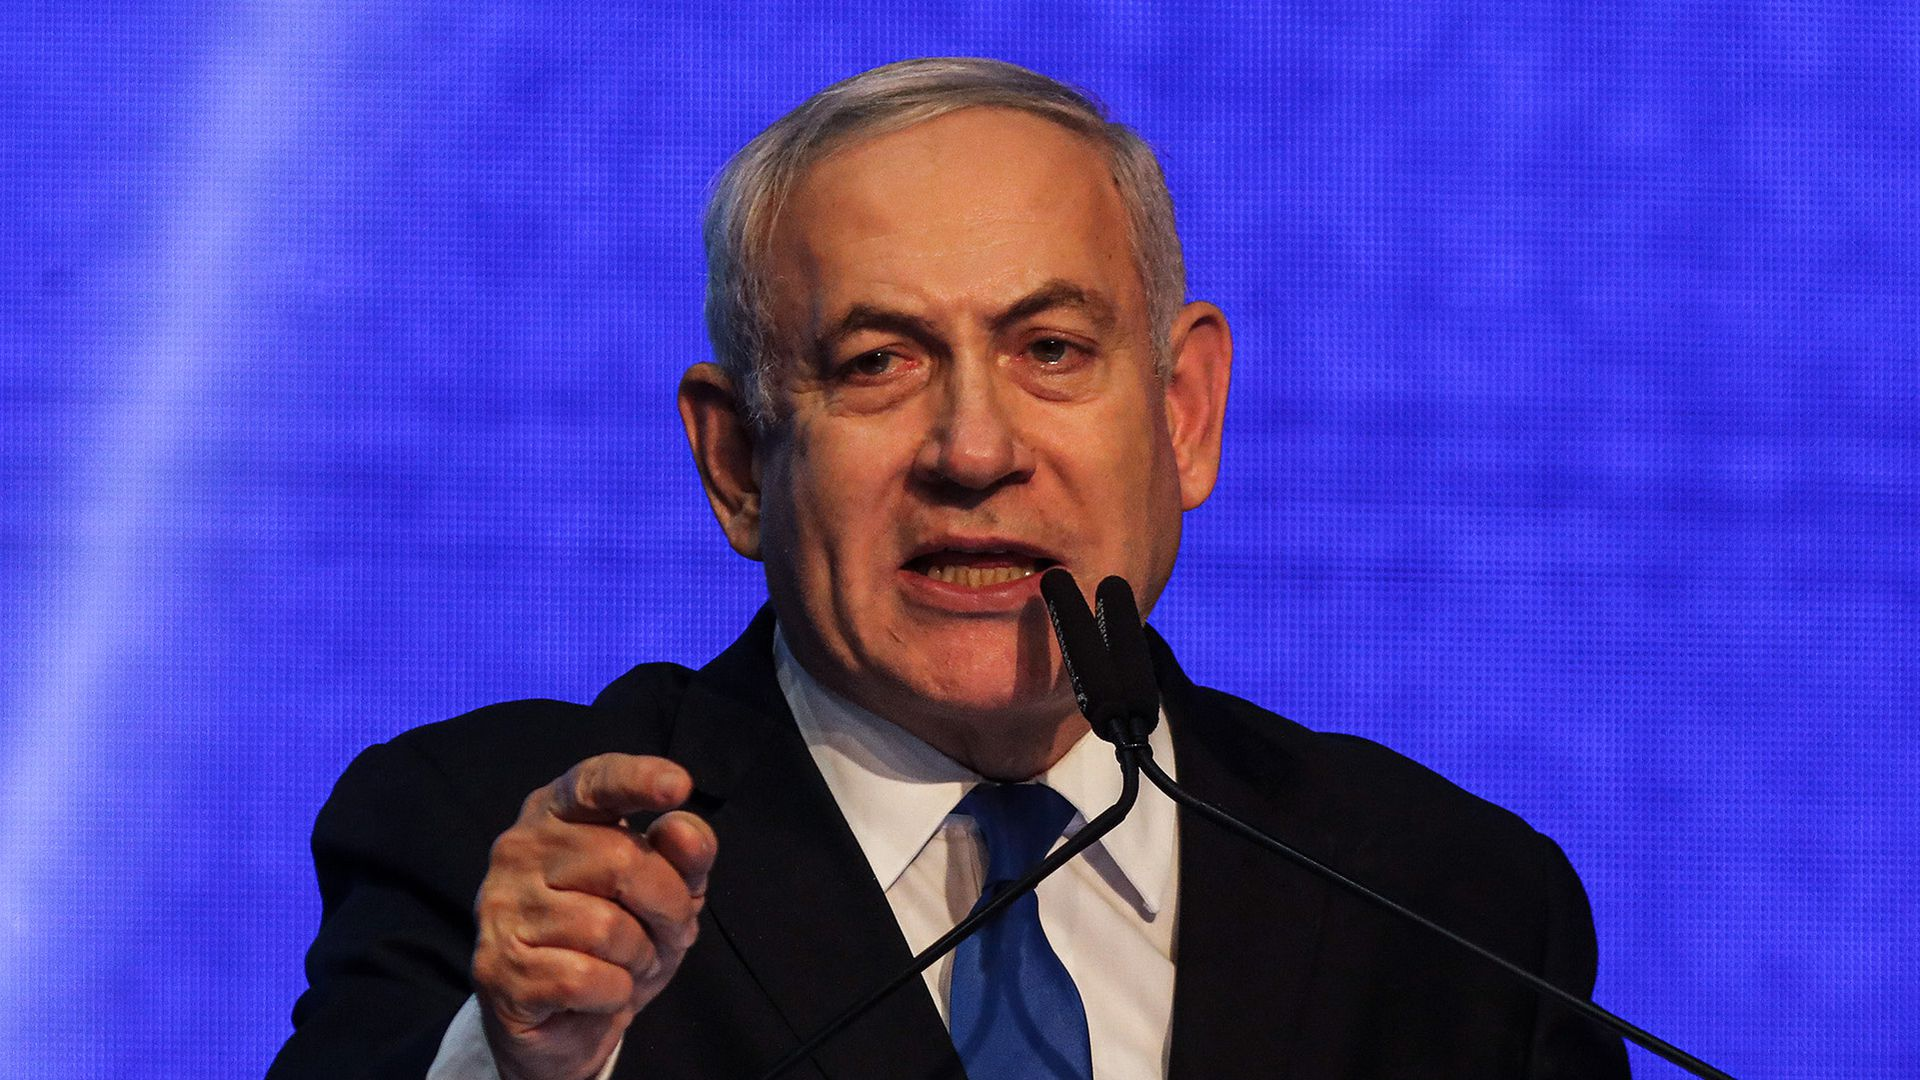 Netanyahu cancels trip to UN General Assembly over Israel election results